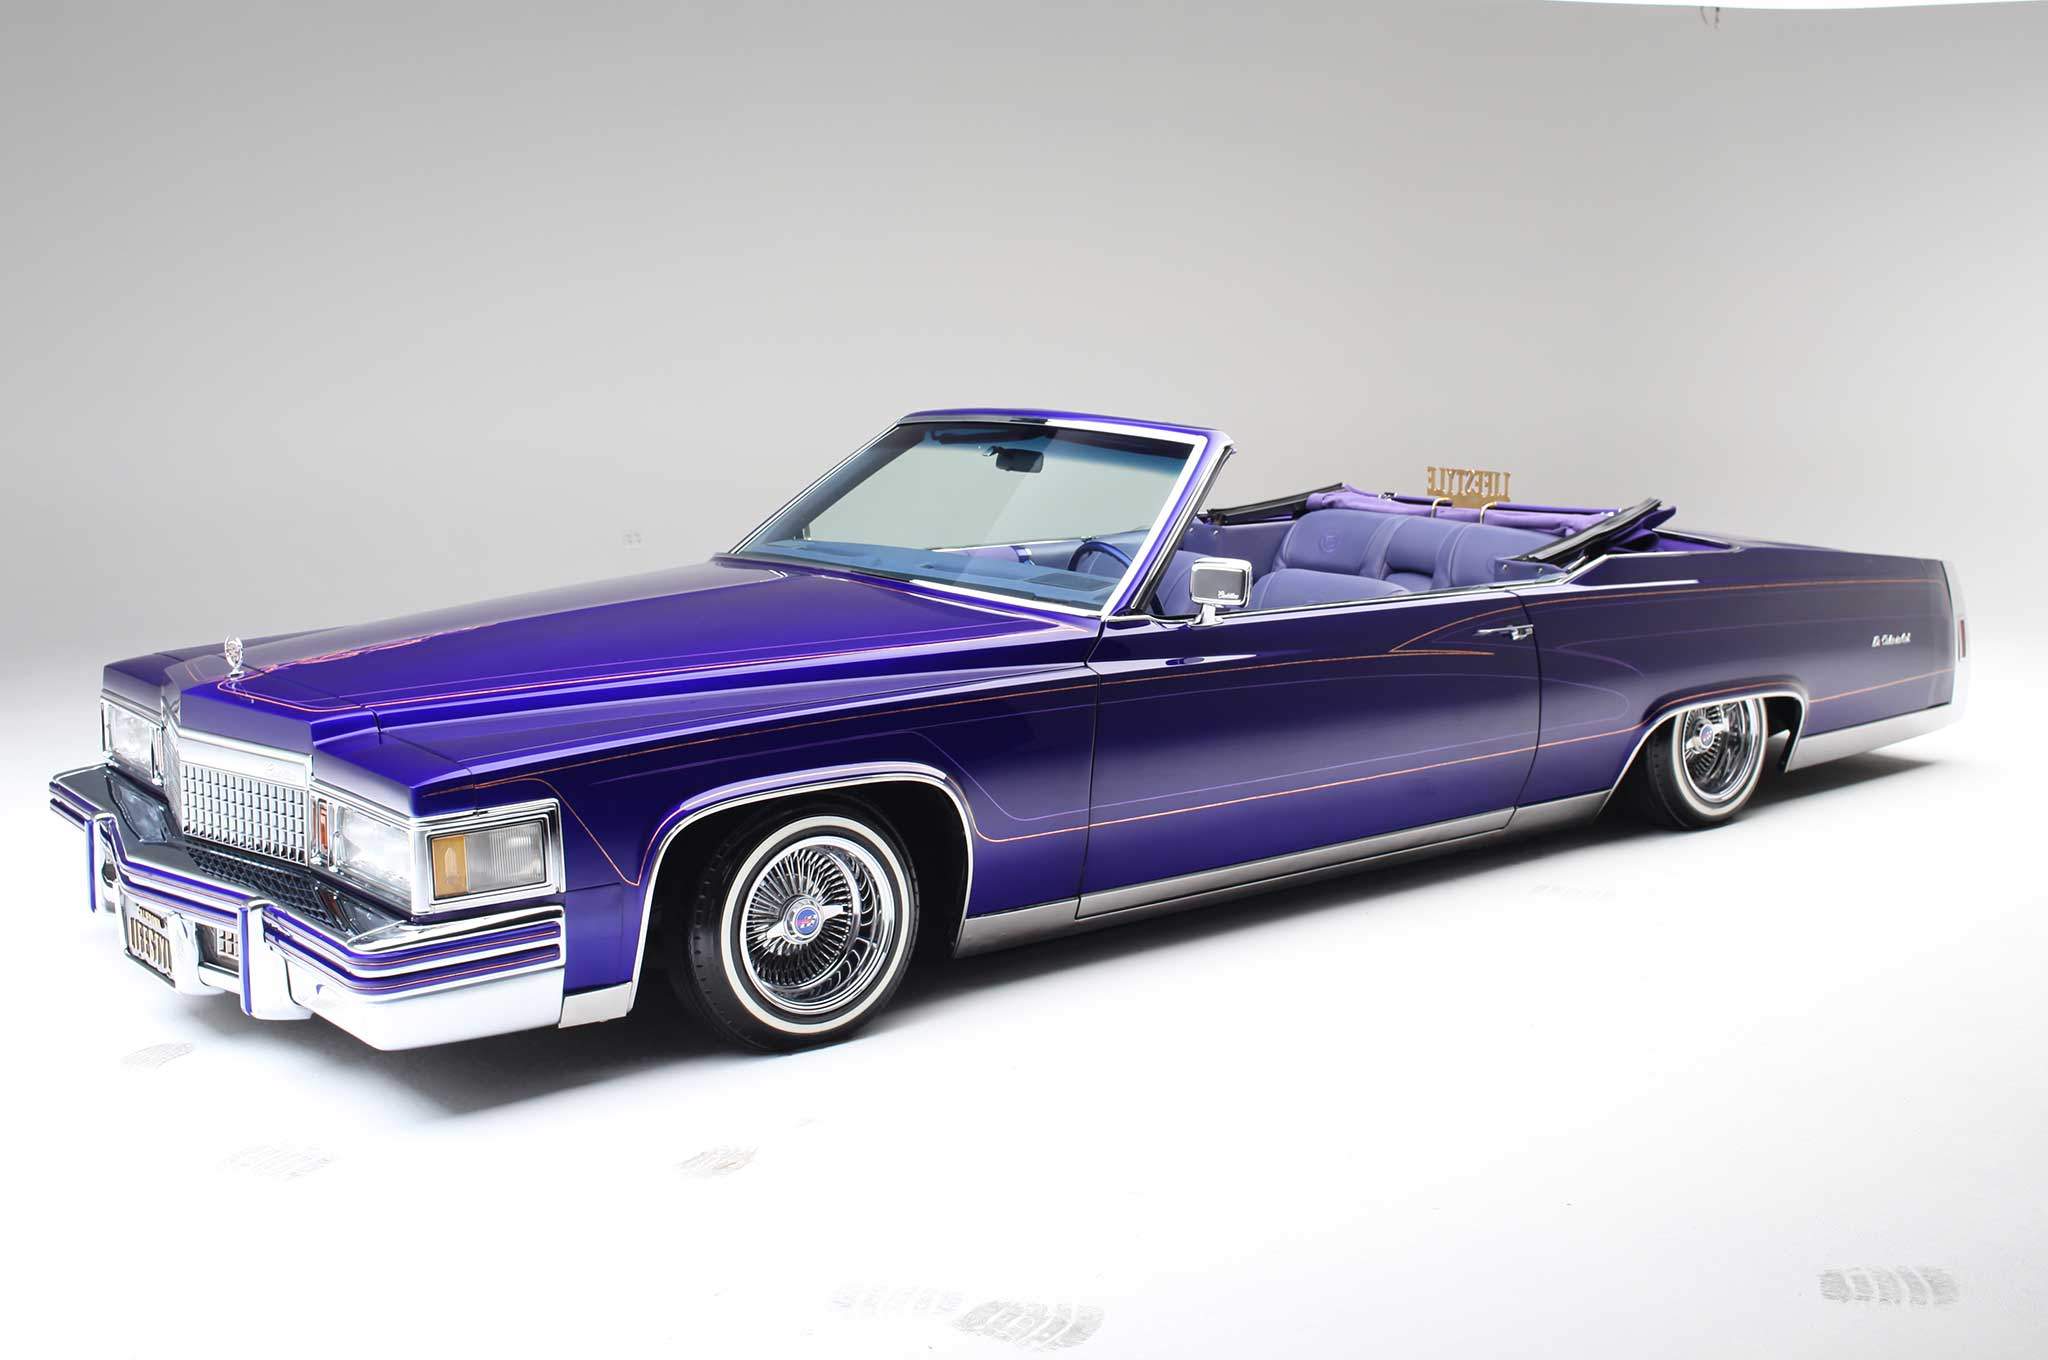 Classic Cars Hd Wallpapers 1920x1080 1979 Cadillac Le Cabriolet Purple Rein Lowrider